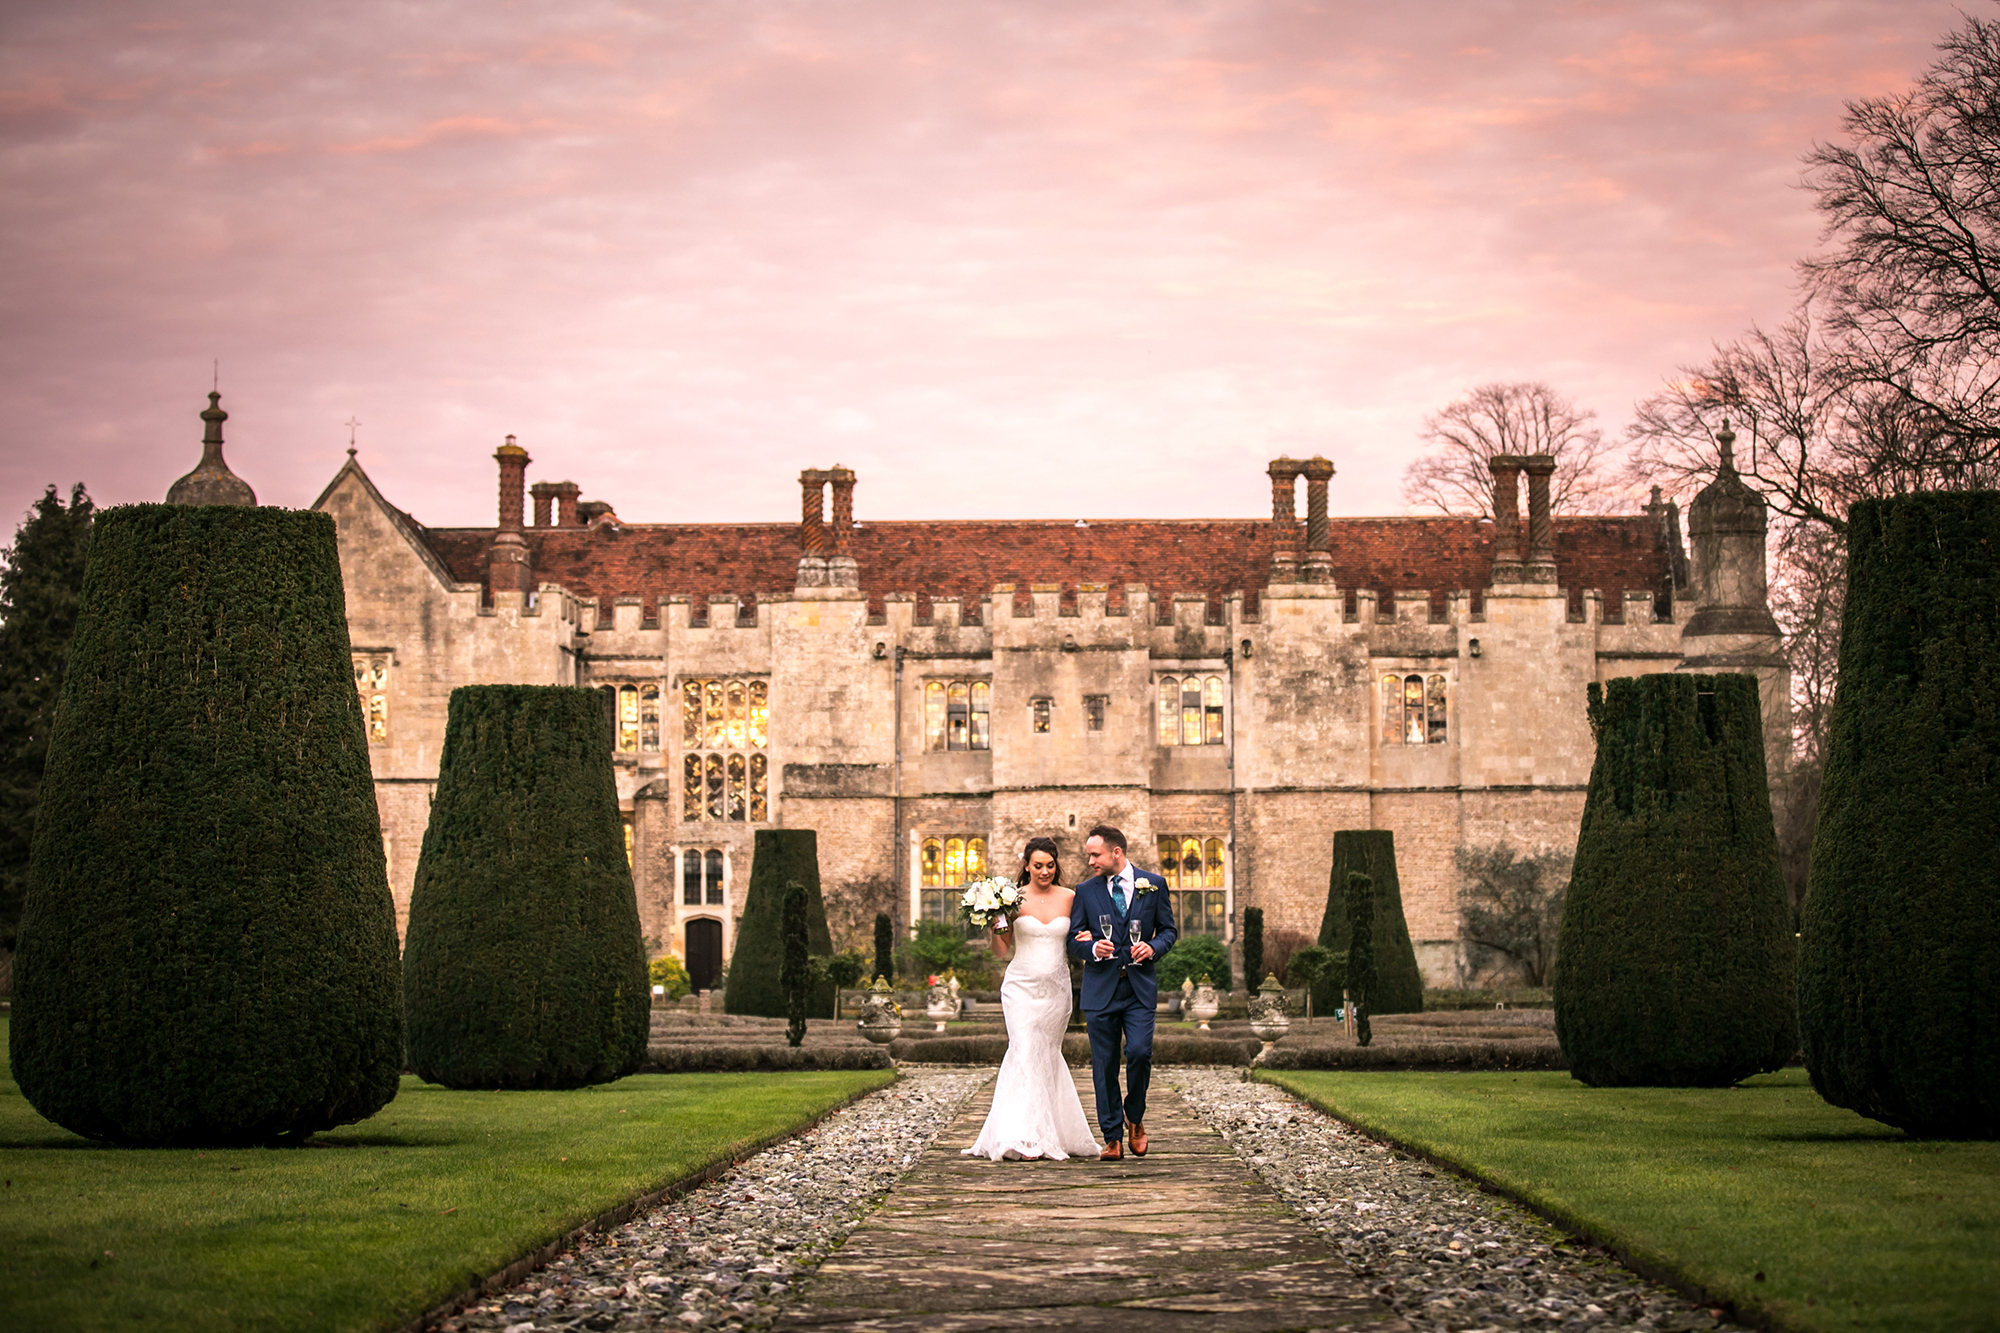 Newly married couple walking in front of Hengrave hall, with champagne through the gardens